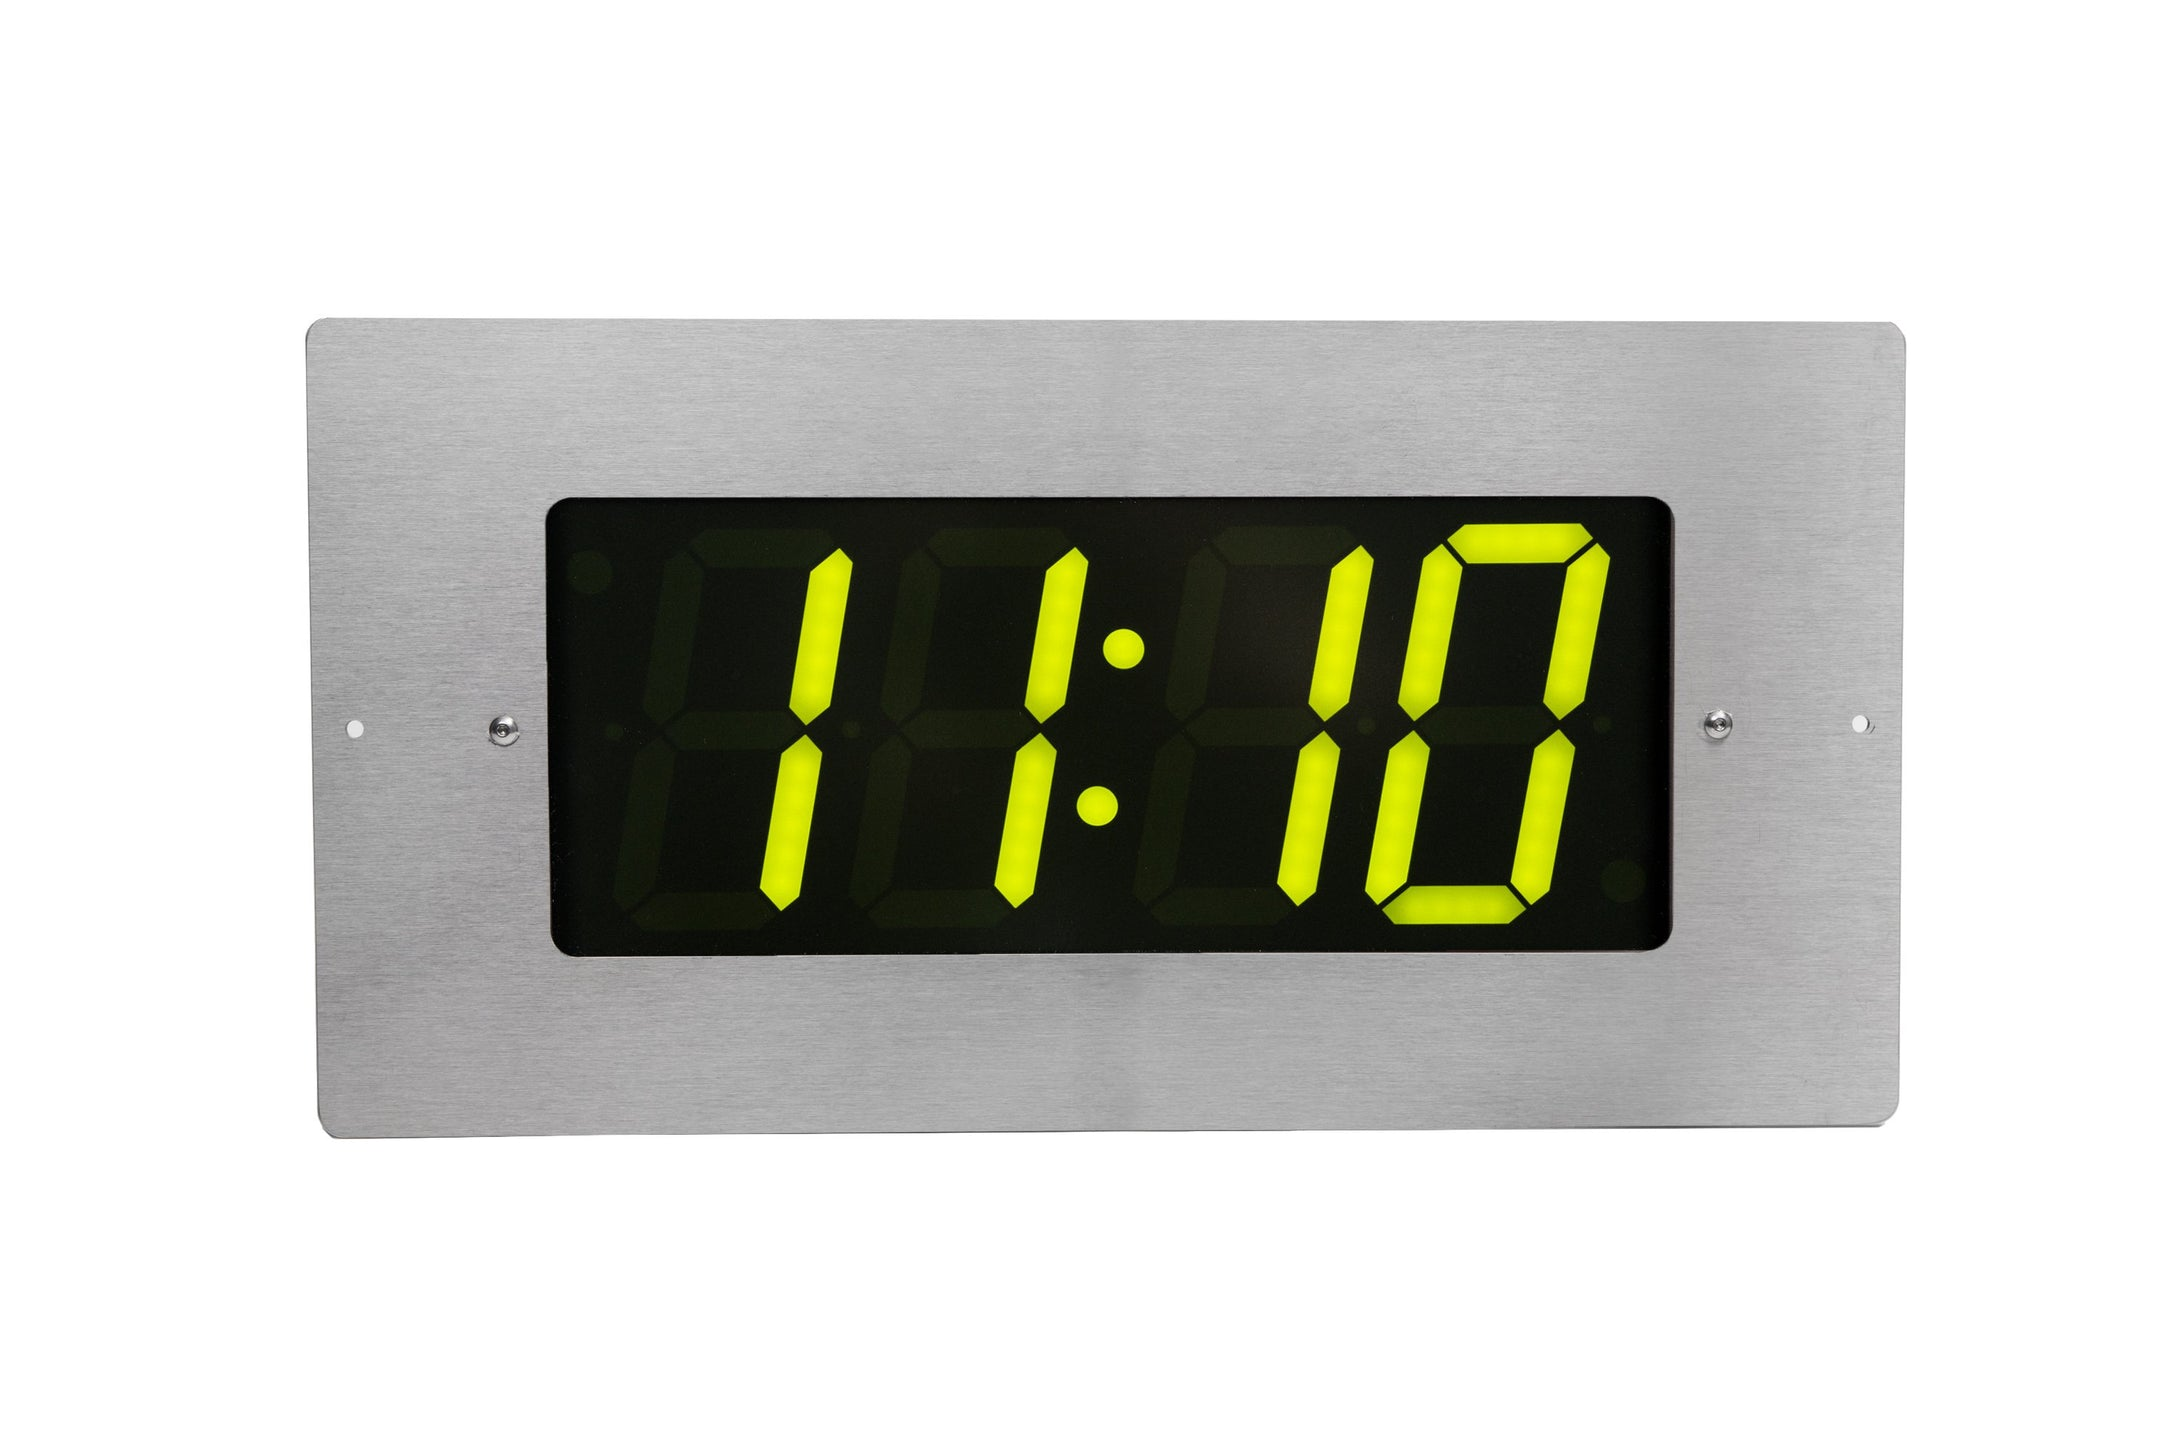 ONT4BKFMS-G:  4 Digit PoE Clock, Green LED, Stainless Steel Flush Mount Faceplate